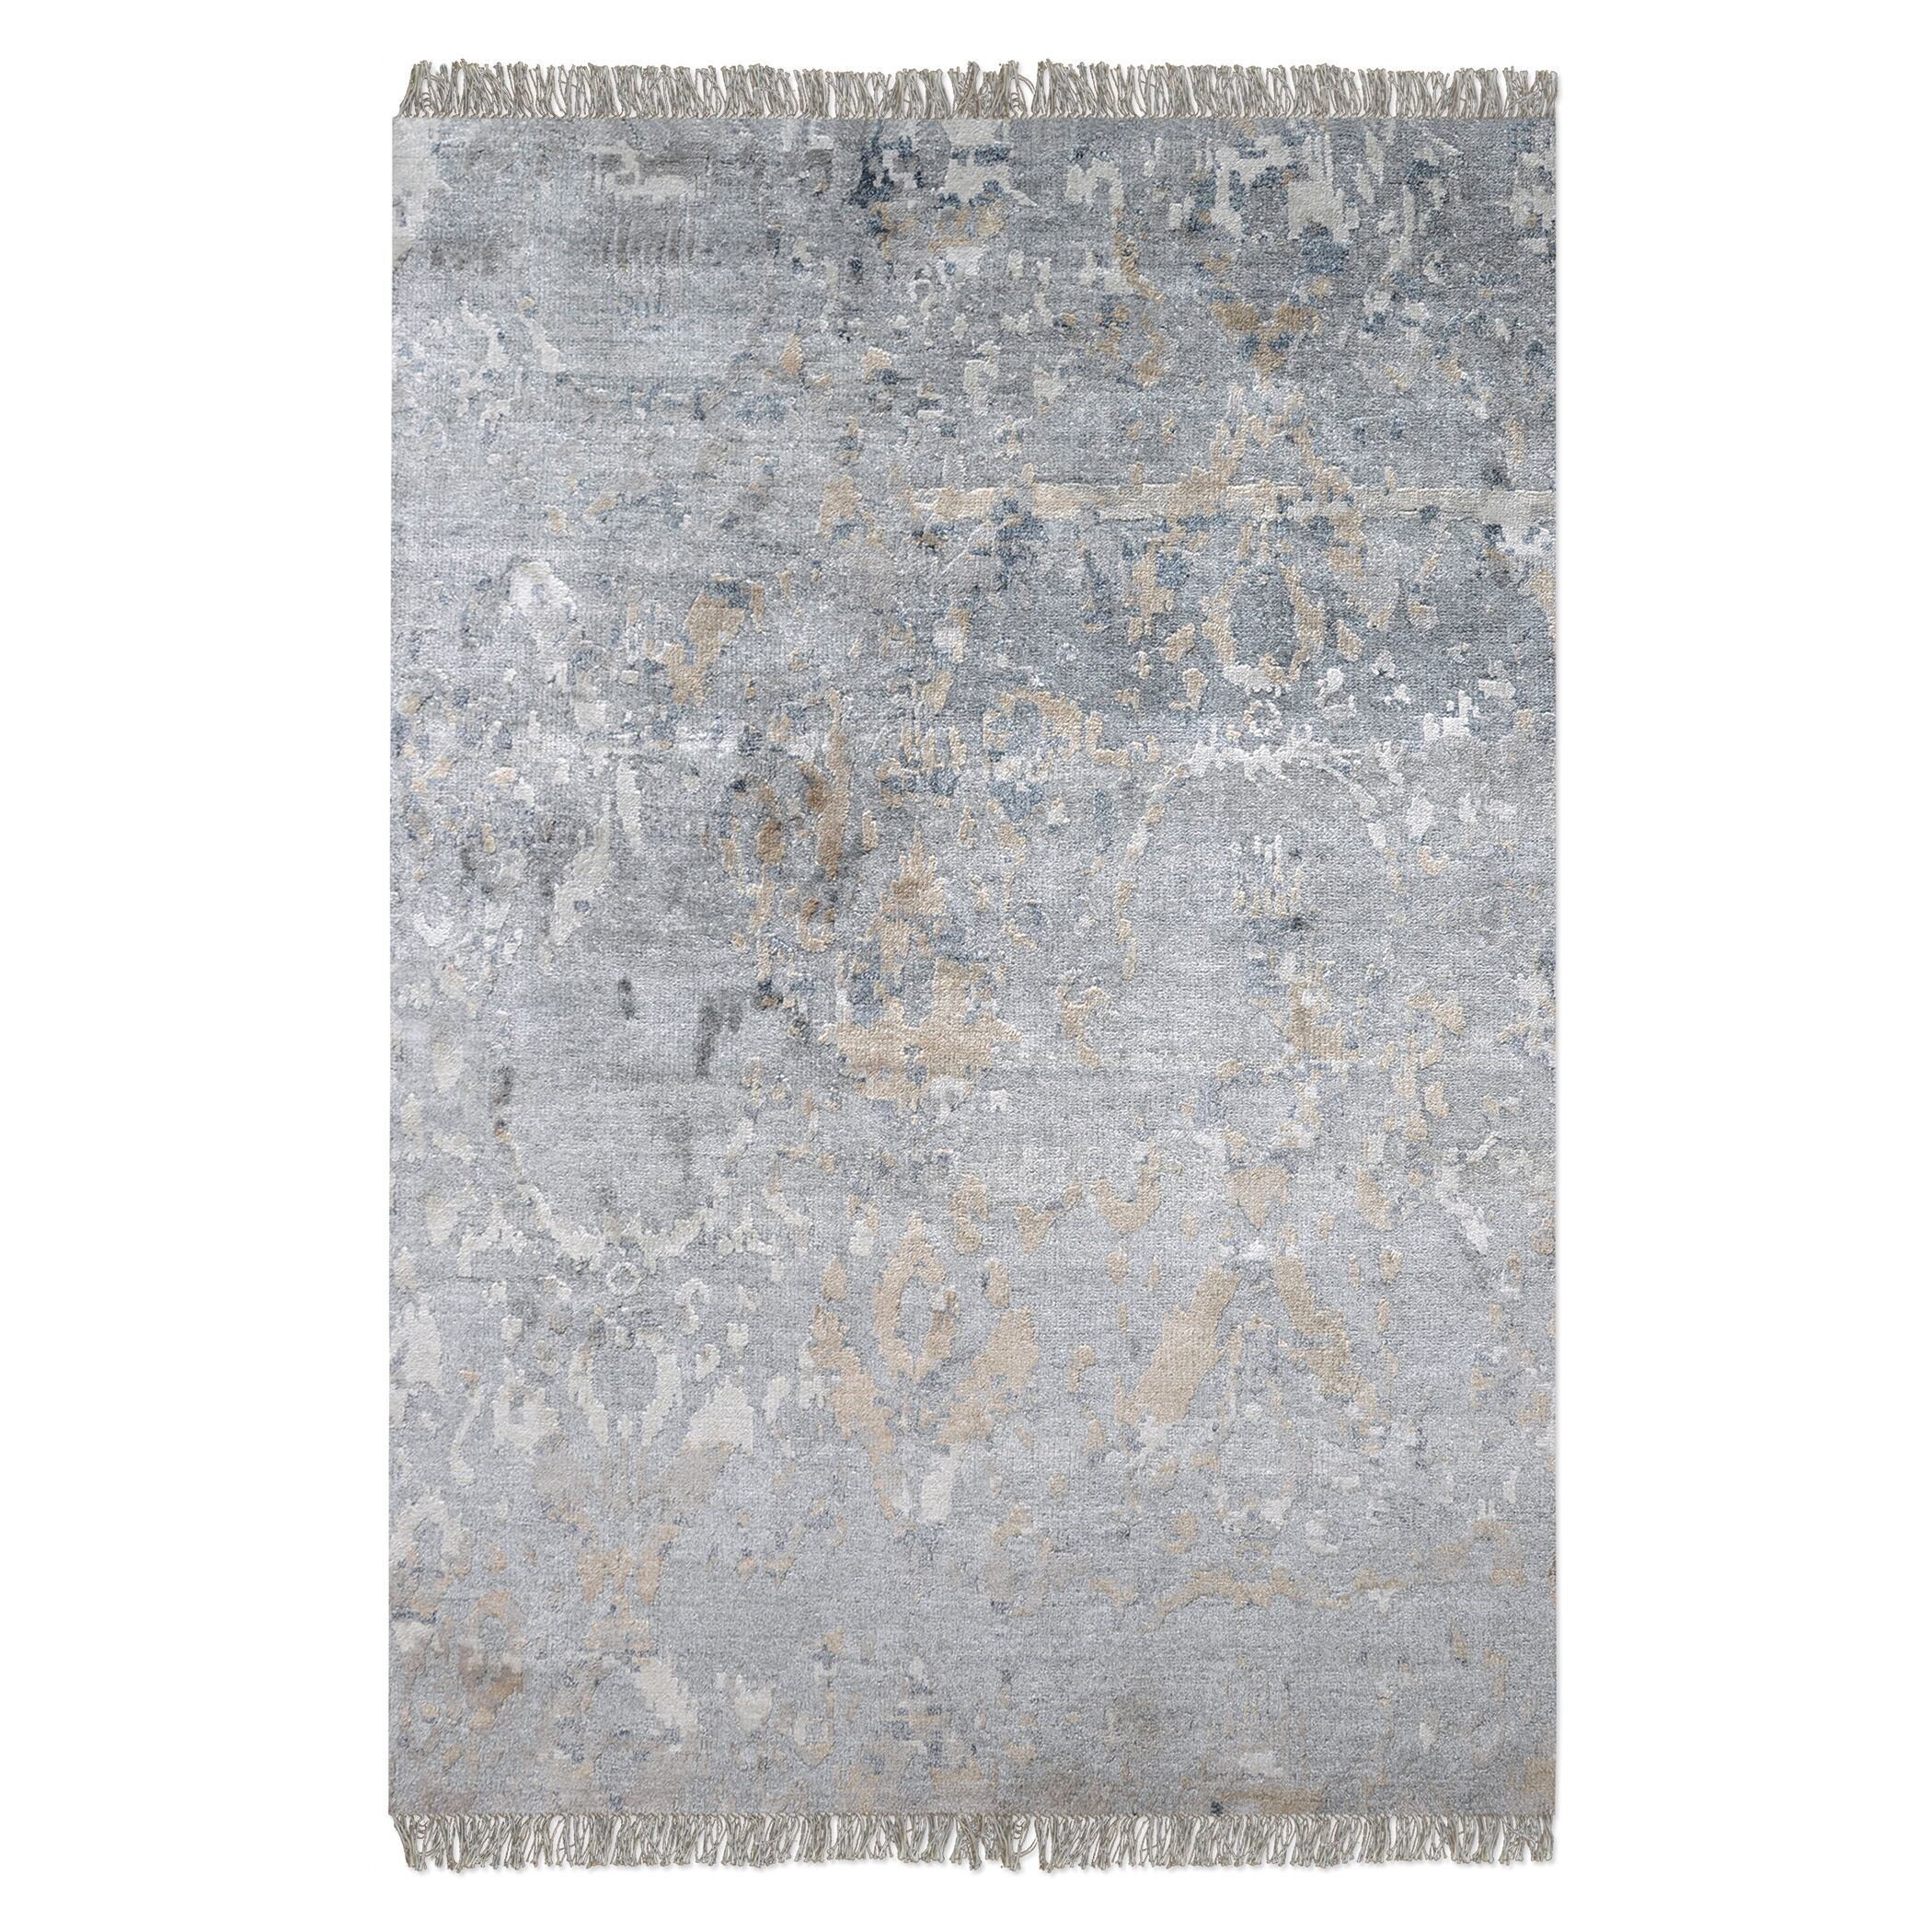 Cobbett Hand-Woven Gray Area Rug Rug Size: 5' x 8'